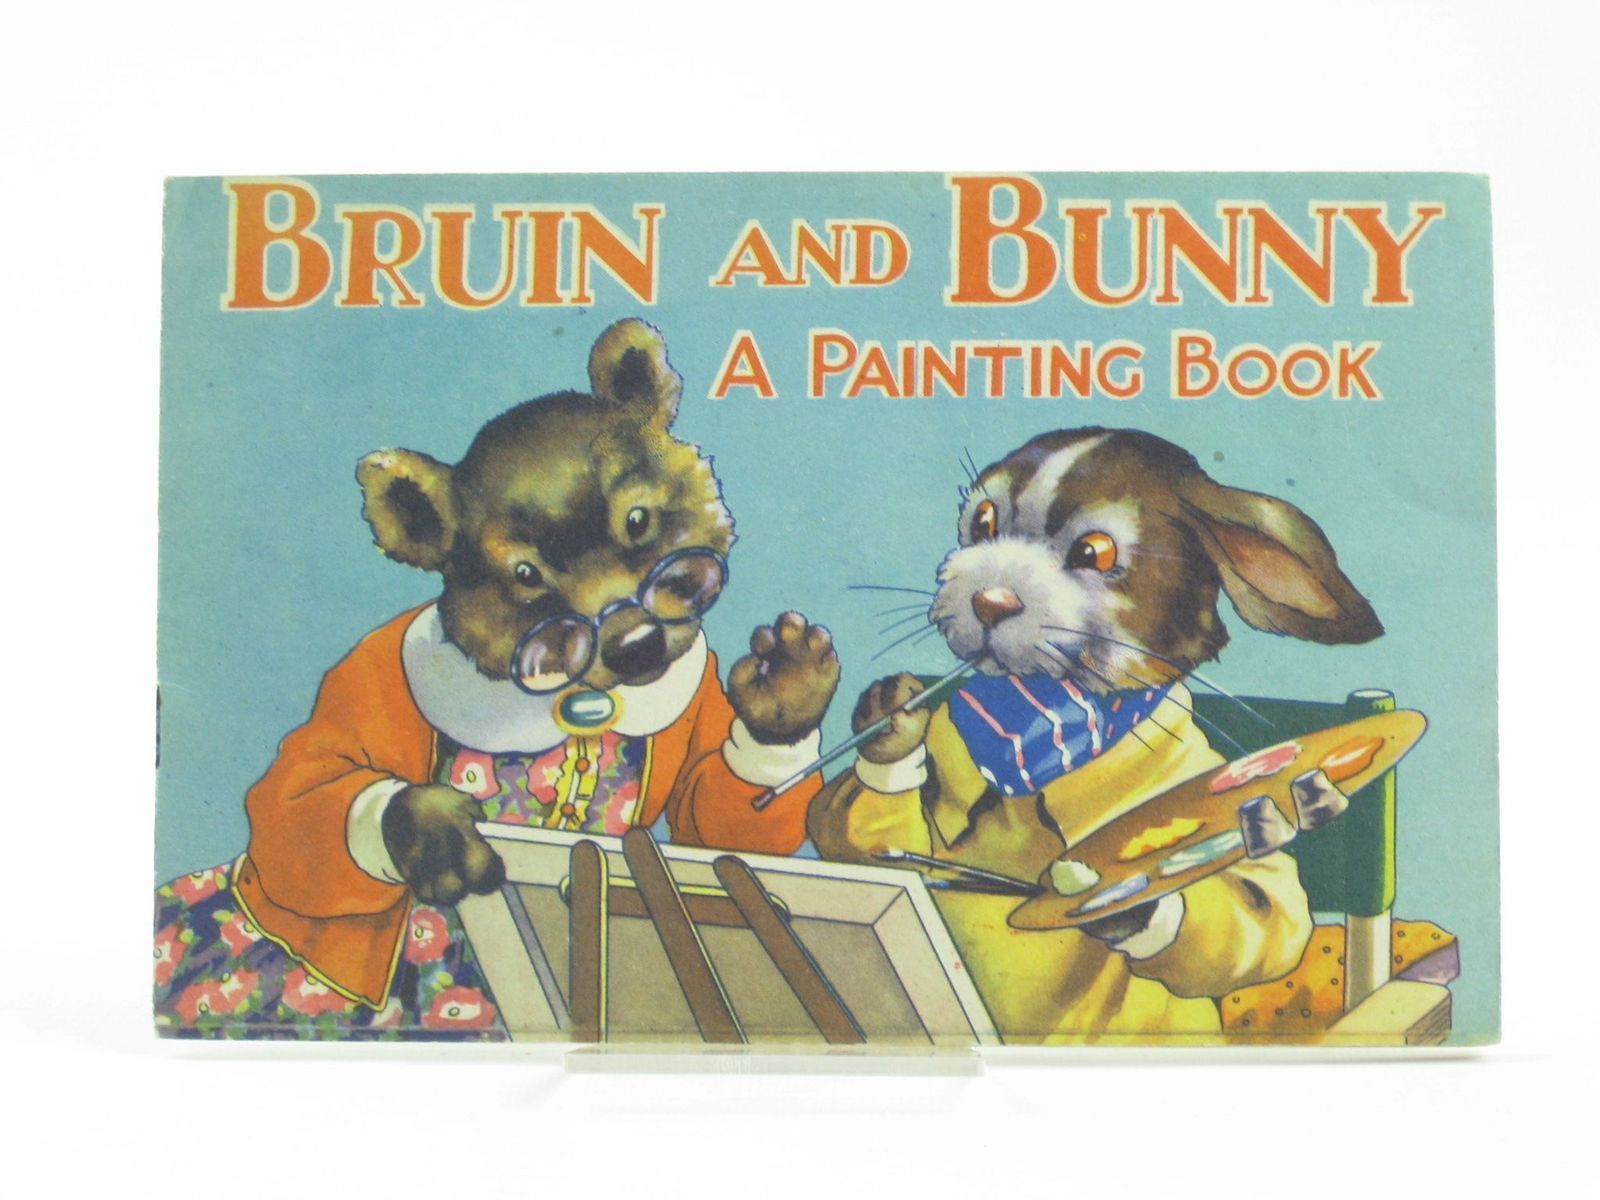 Photo of BRUIN AND BUNNY - A PAINTING BOOK FOR BOYS AND GIRLS- Stock Number: 1311147